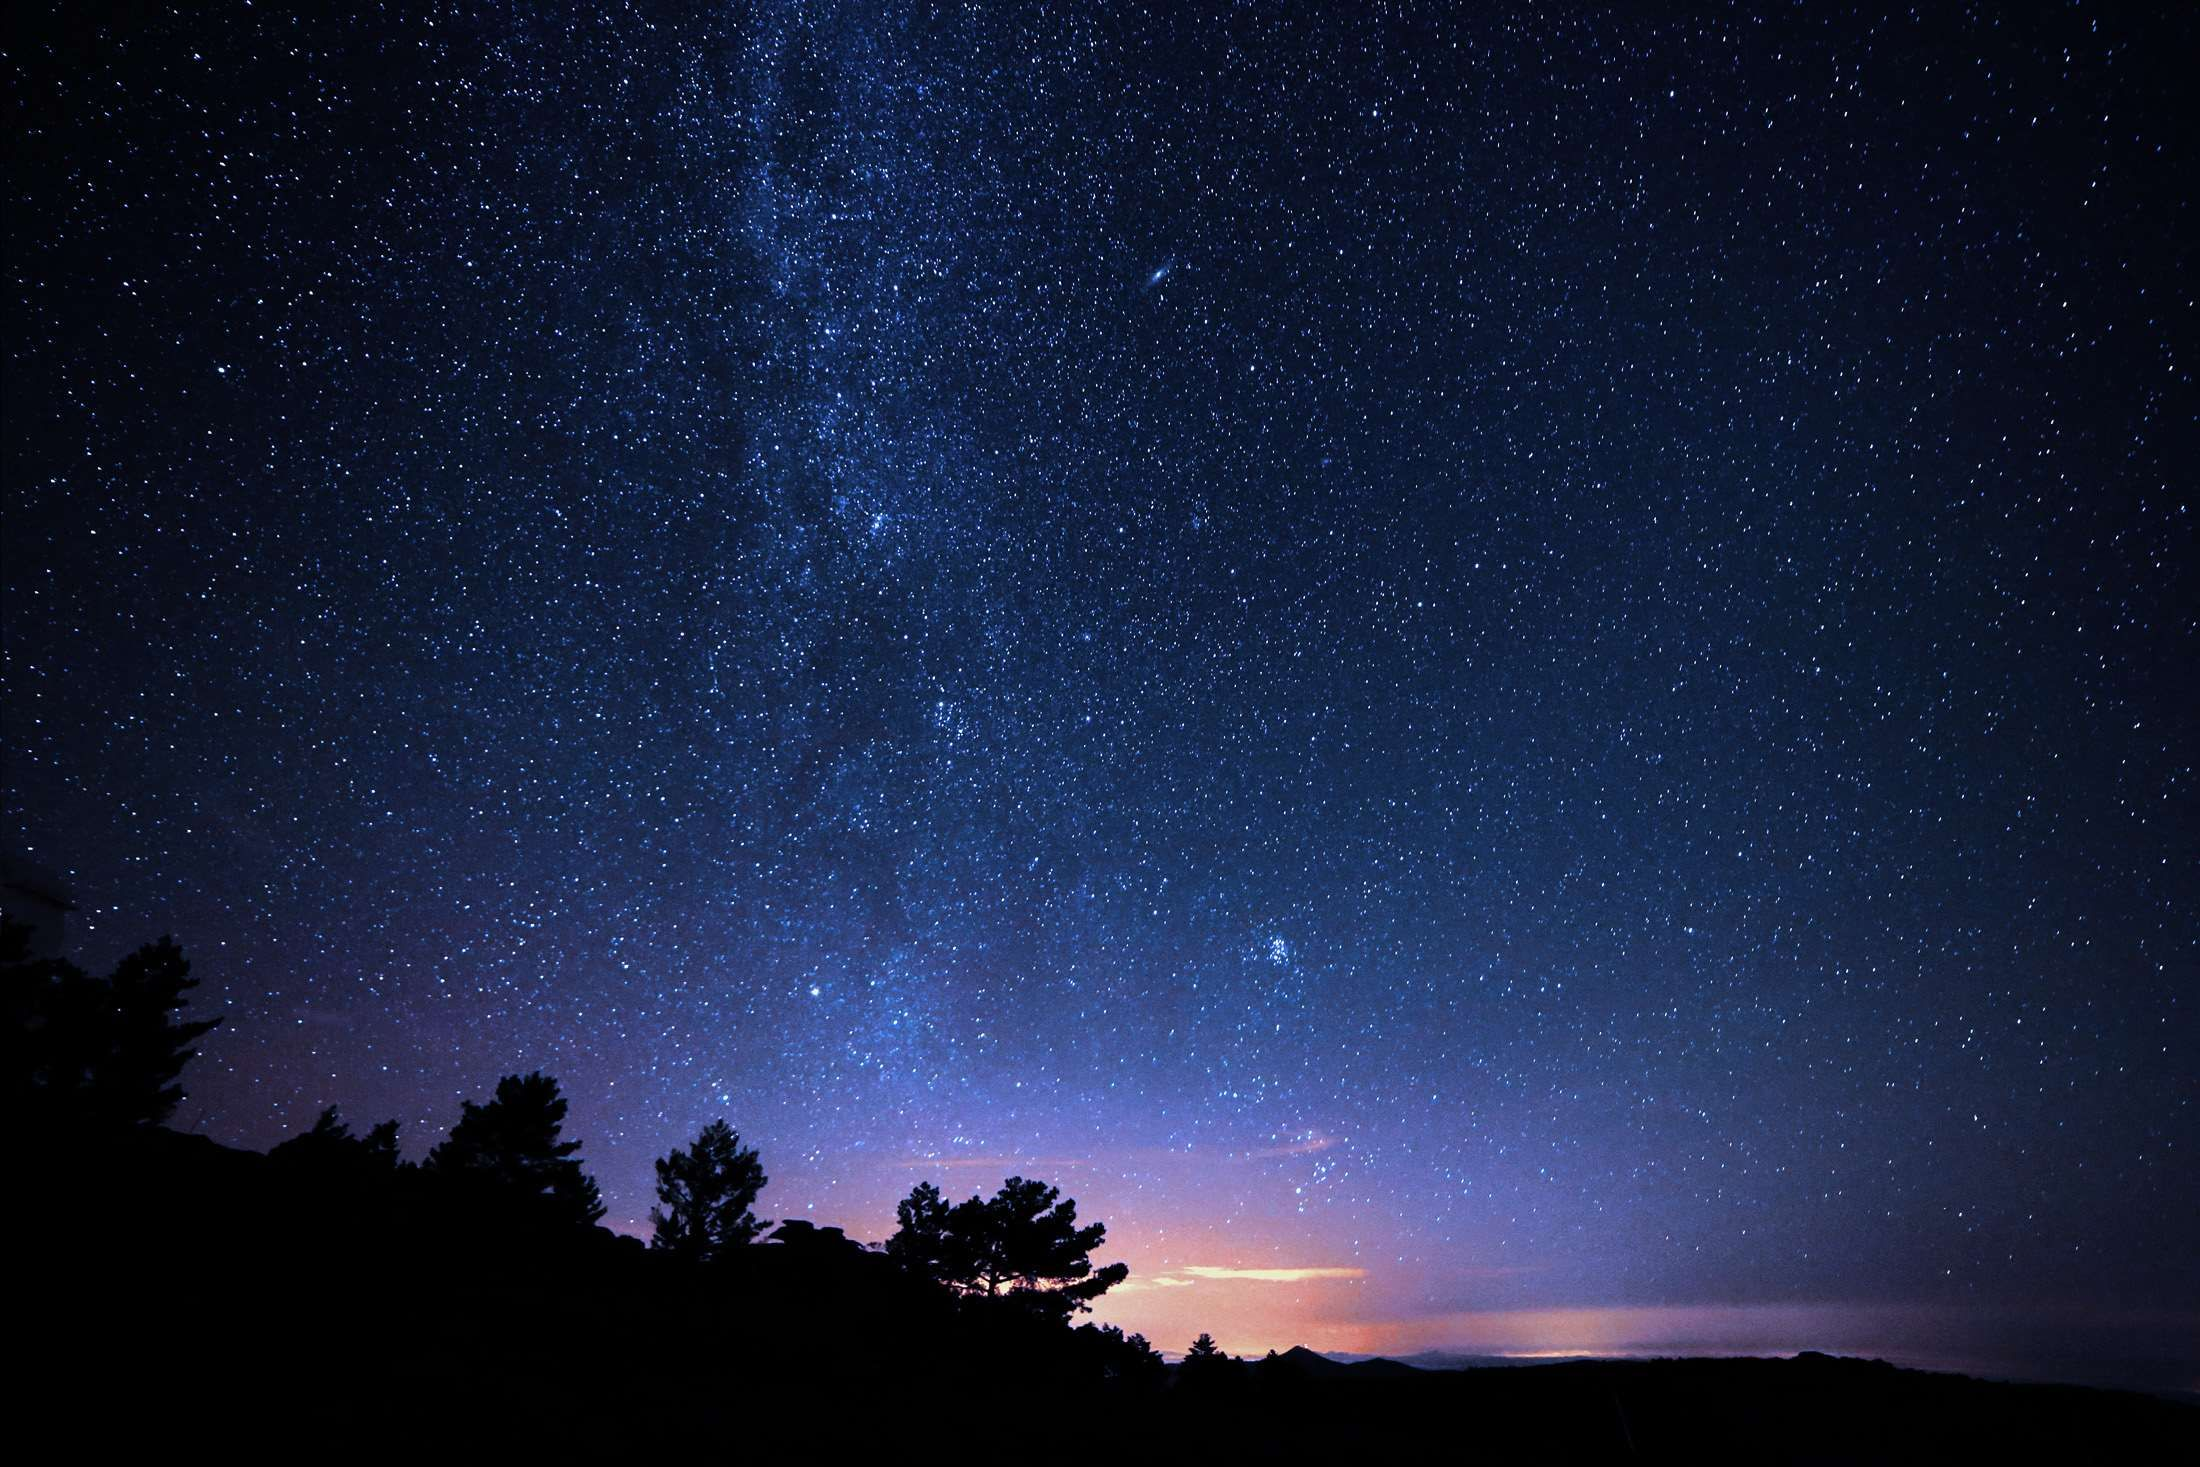 Astronomy Astrophotography Constellation Dark Evening Evening Sky Landscape Long Exposure Nature Night Night Sky Outdoors Scenic Silhoutte Sky St